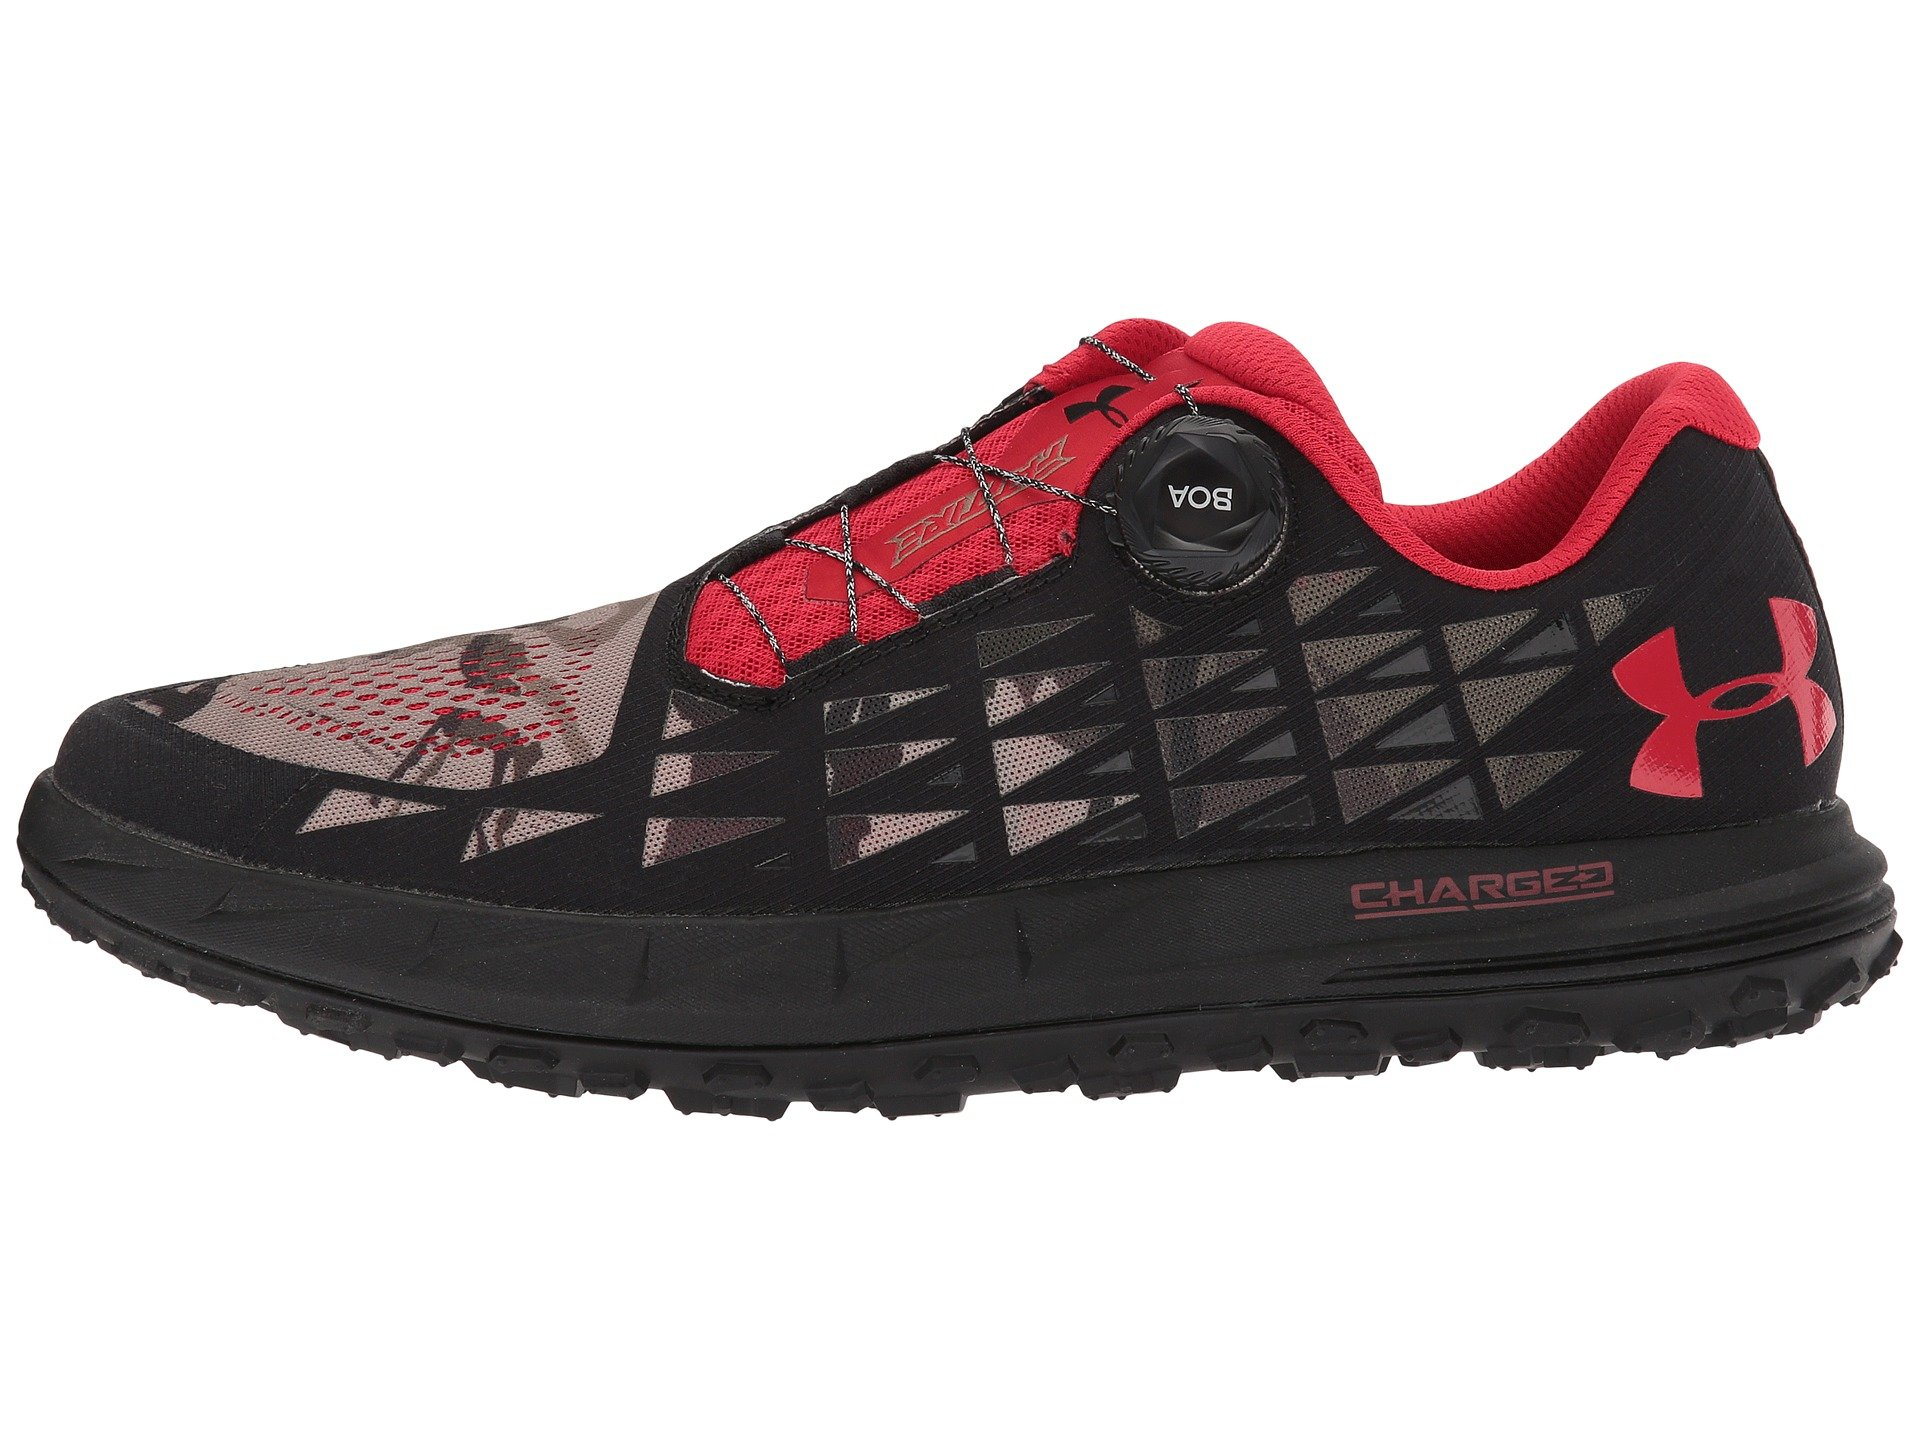 Under Armour Running Shoes - 9 Best Shoes from Under Armour be3392dc13df